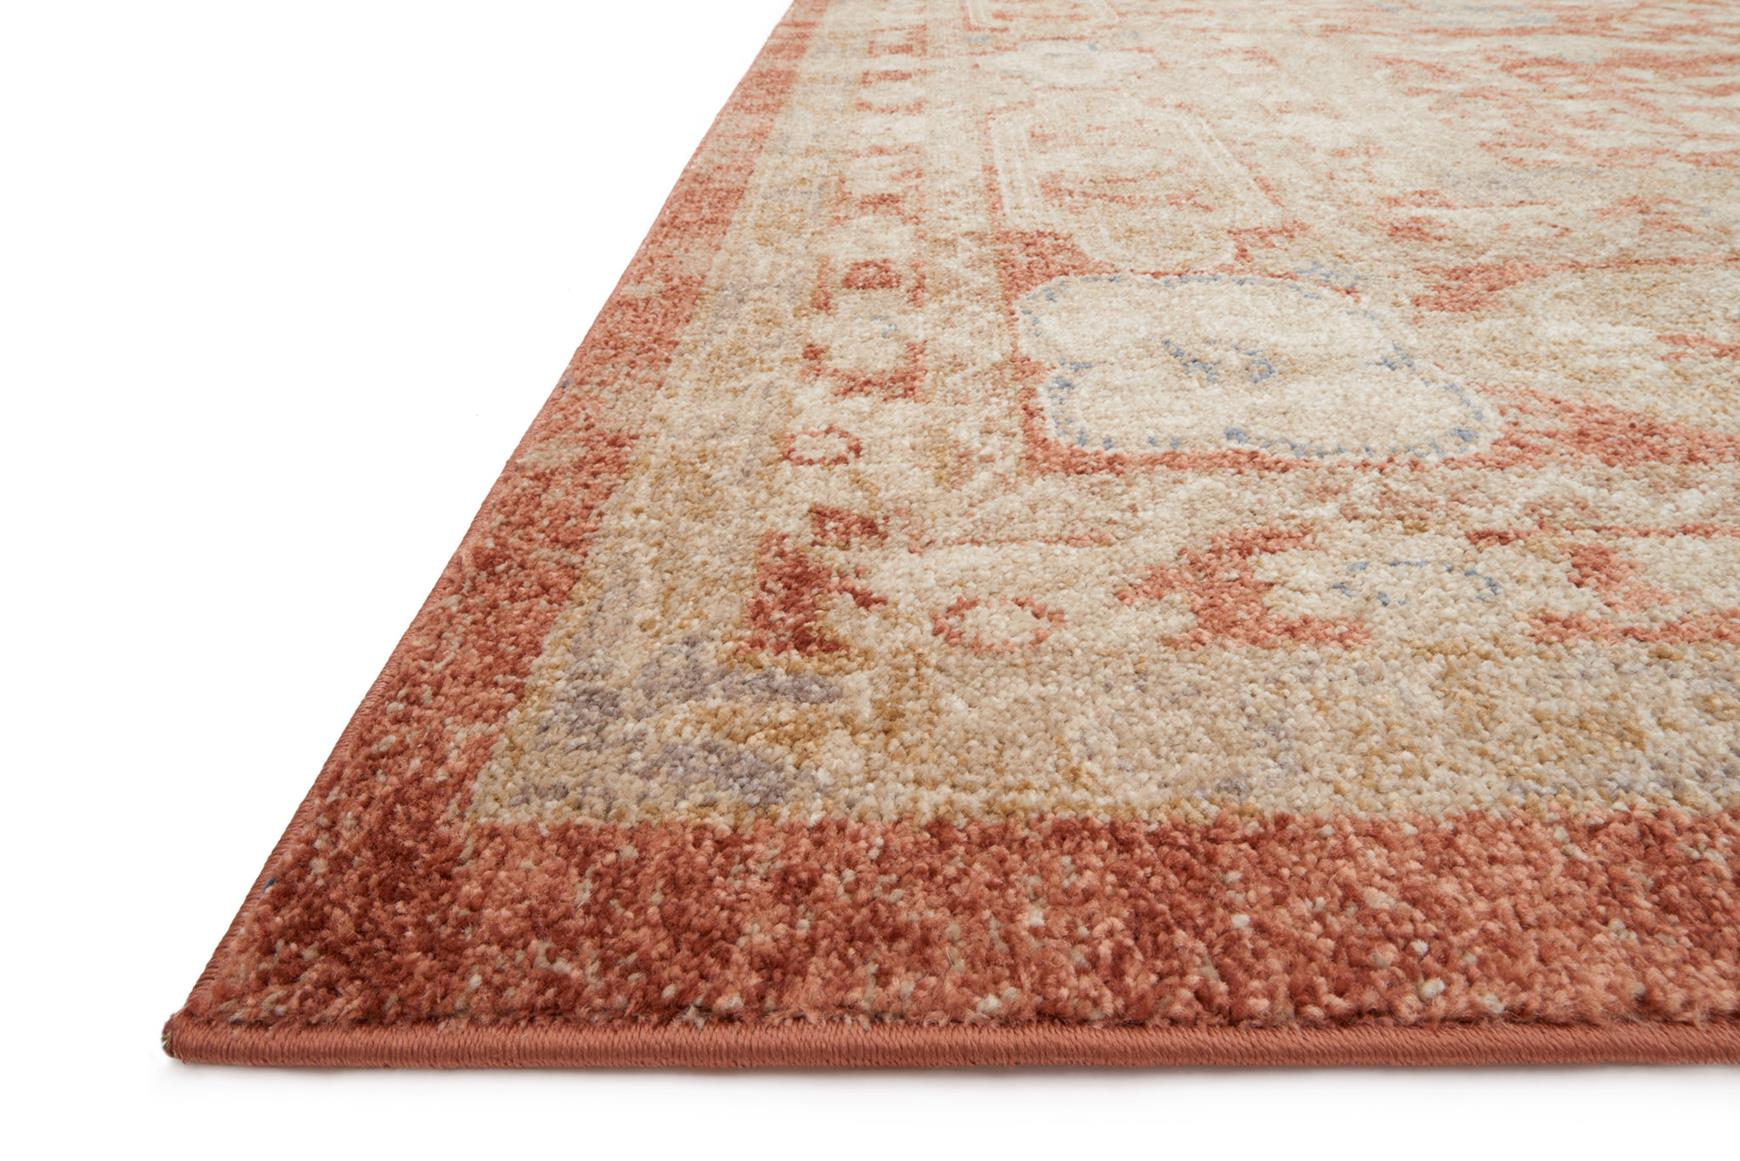 Trinity Ty 06 Terracotta Area Rug Magnolia Home By